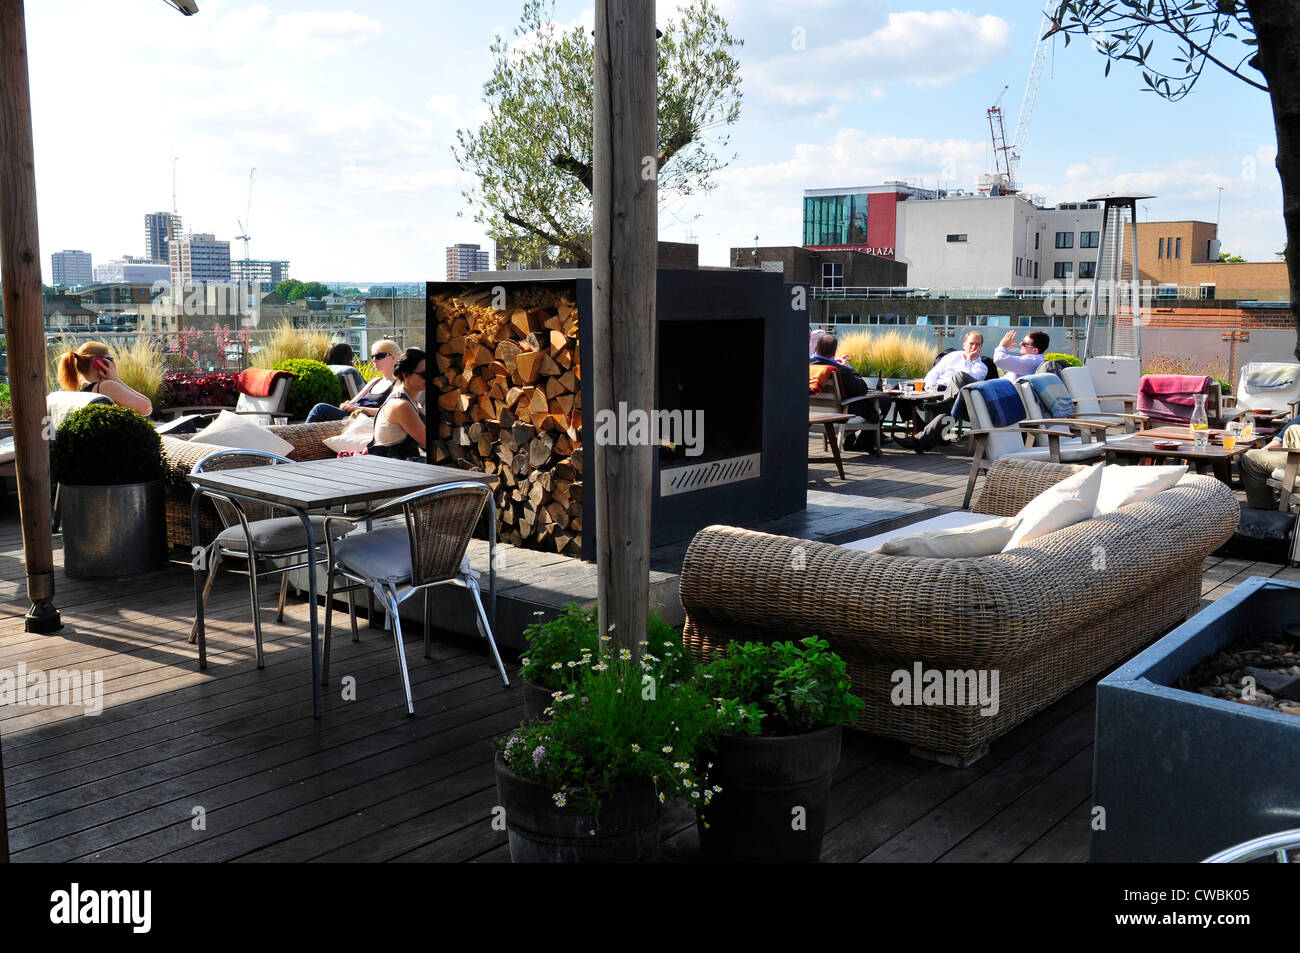 Boundary Rooftop Bar, Shoreditch, London - Stock Image